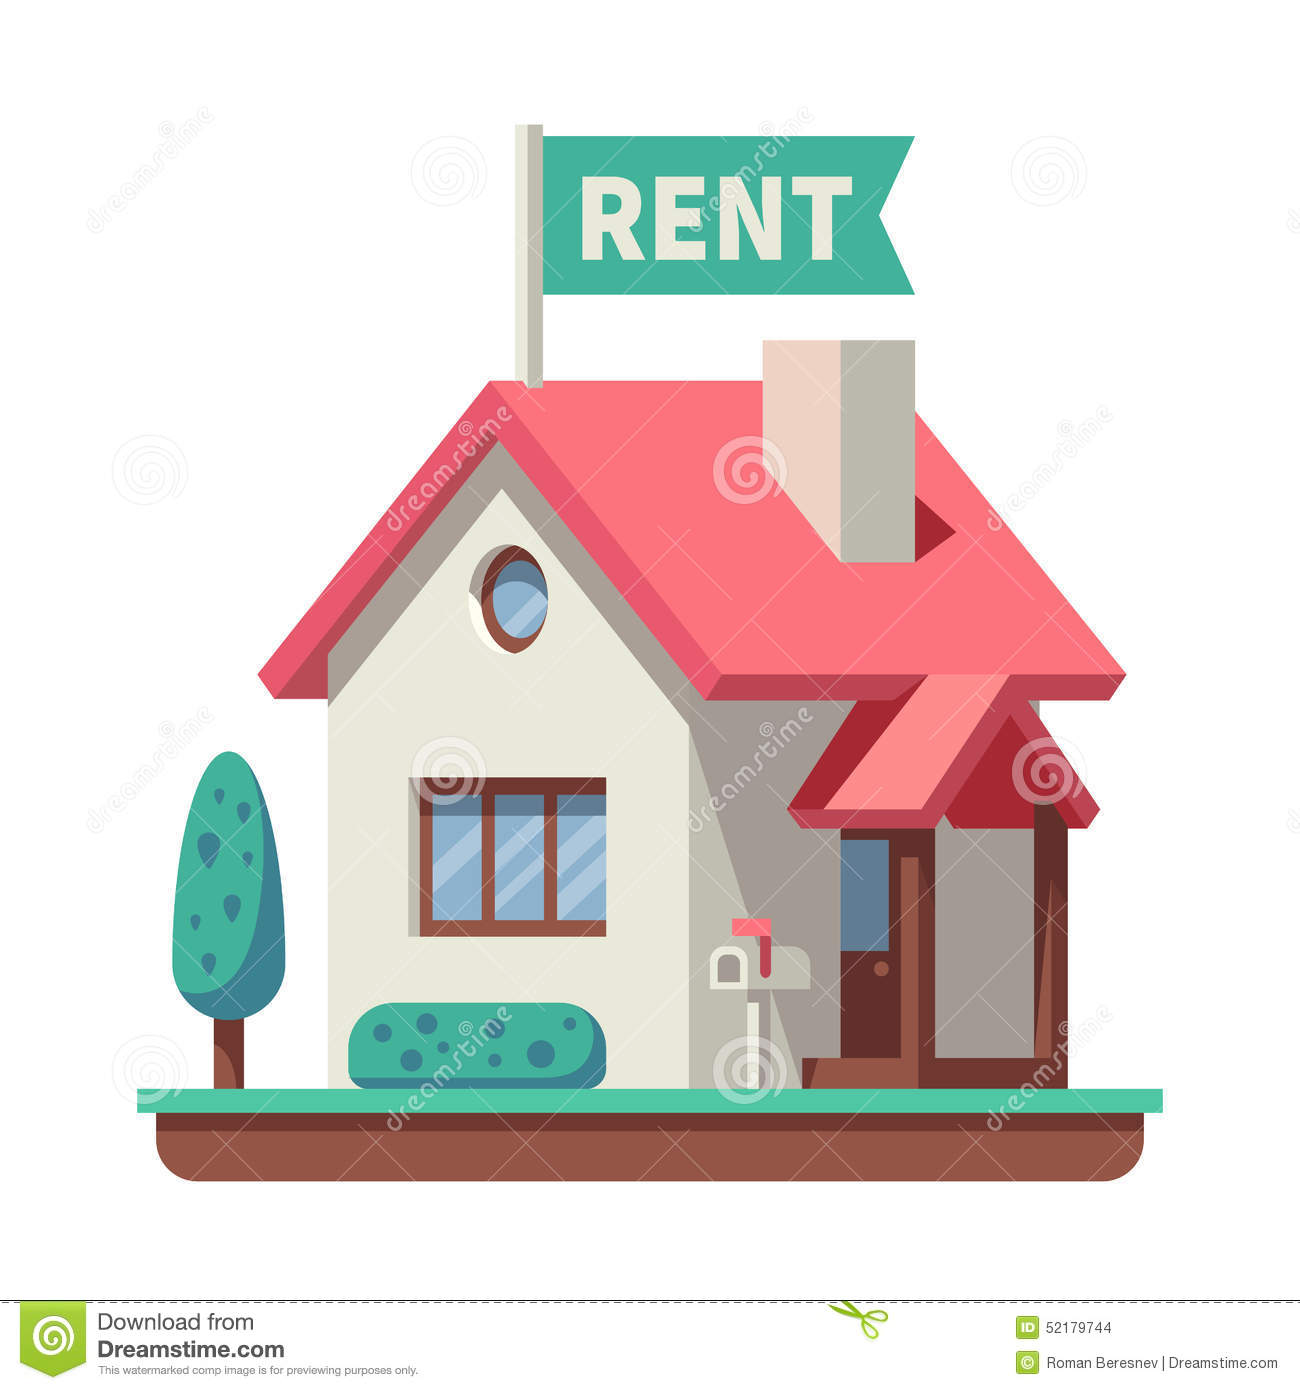 Apartment Buildings For Rent: House For Rent Stock Vector. Image Of Graphic, Element